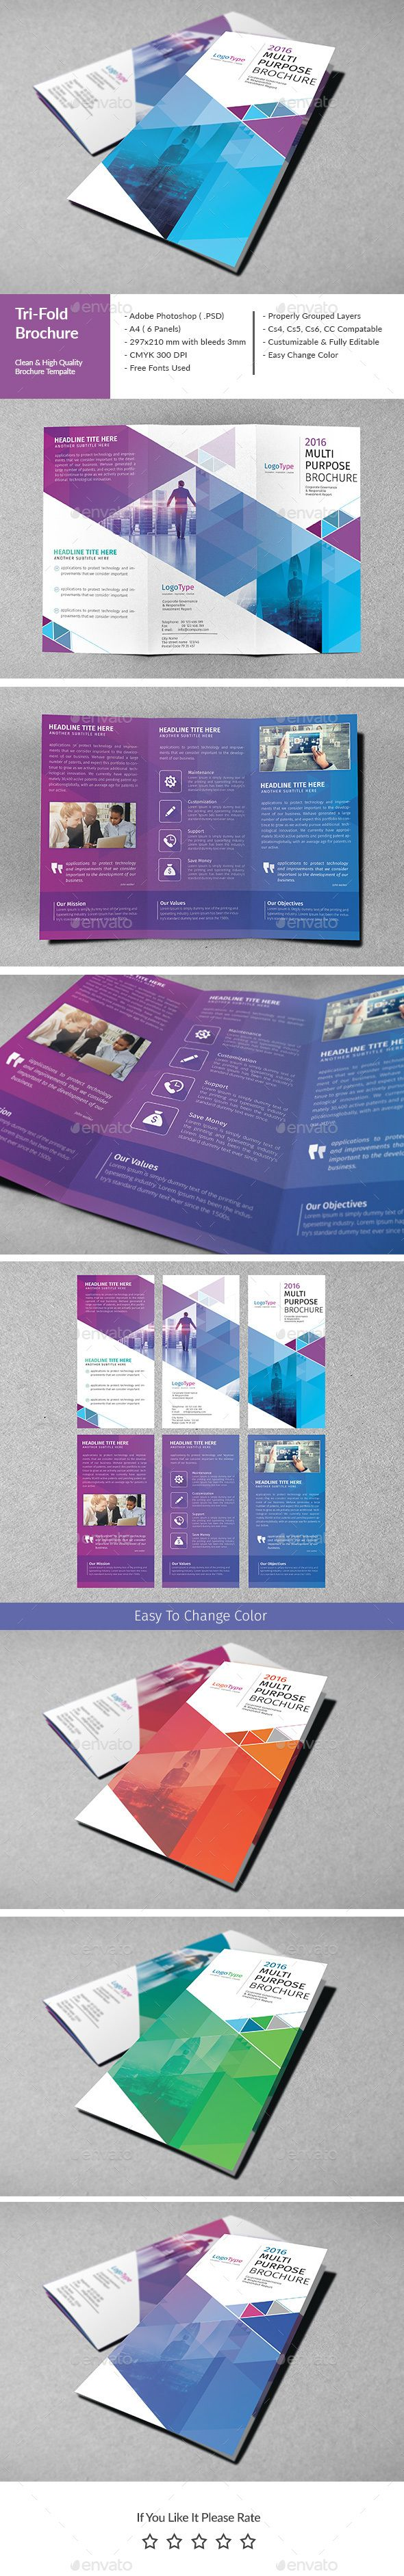 Corporate TriFold Brochure 06 — Photoshop PSD #trifold brochure #a4 • Available here → https://graphicriver.net/item/corporate-trifold-brochure-06/15026570?ref=pxcr